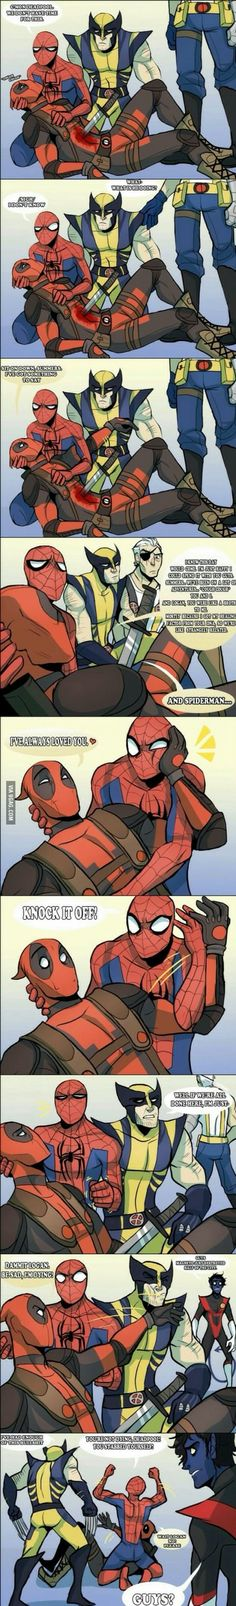 Deadpool just wants to be loved - 9GAG